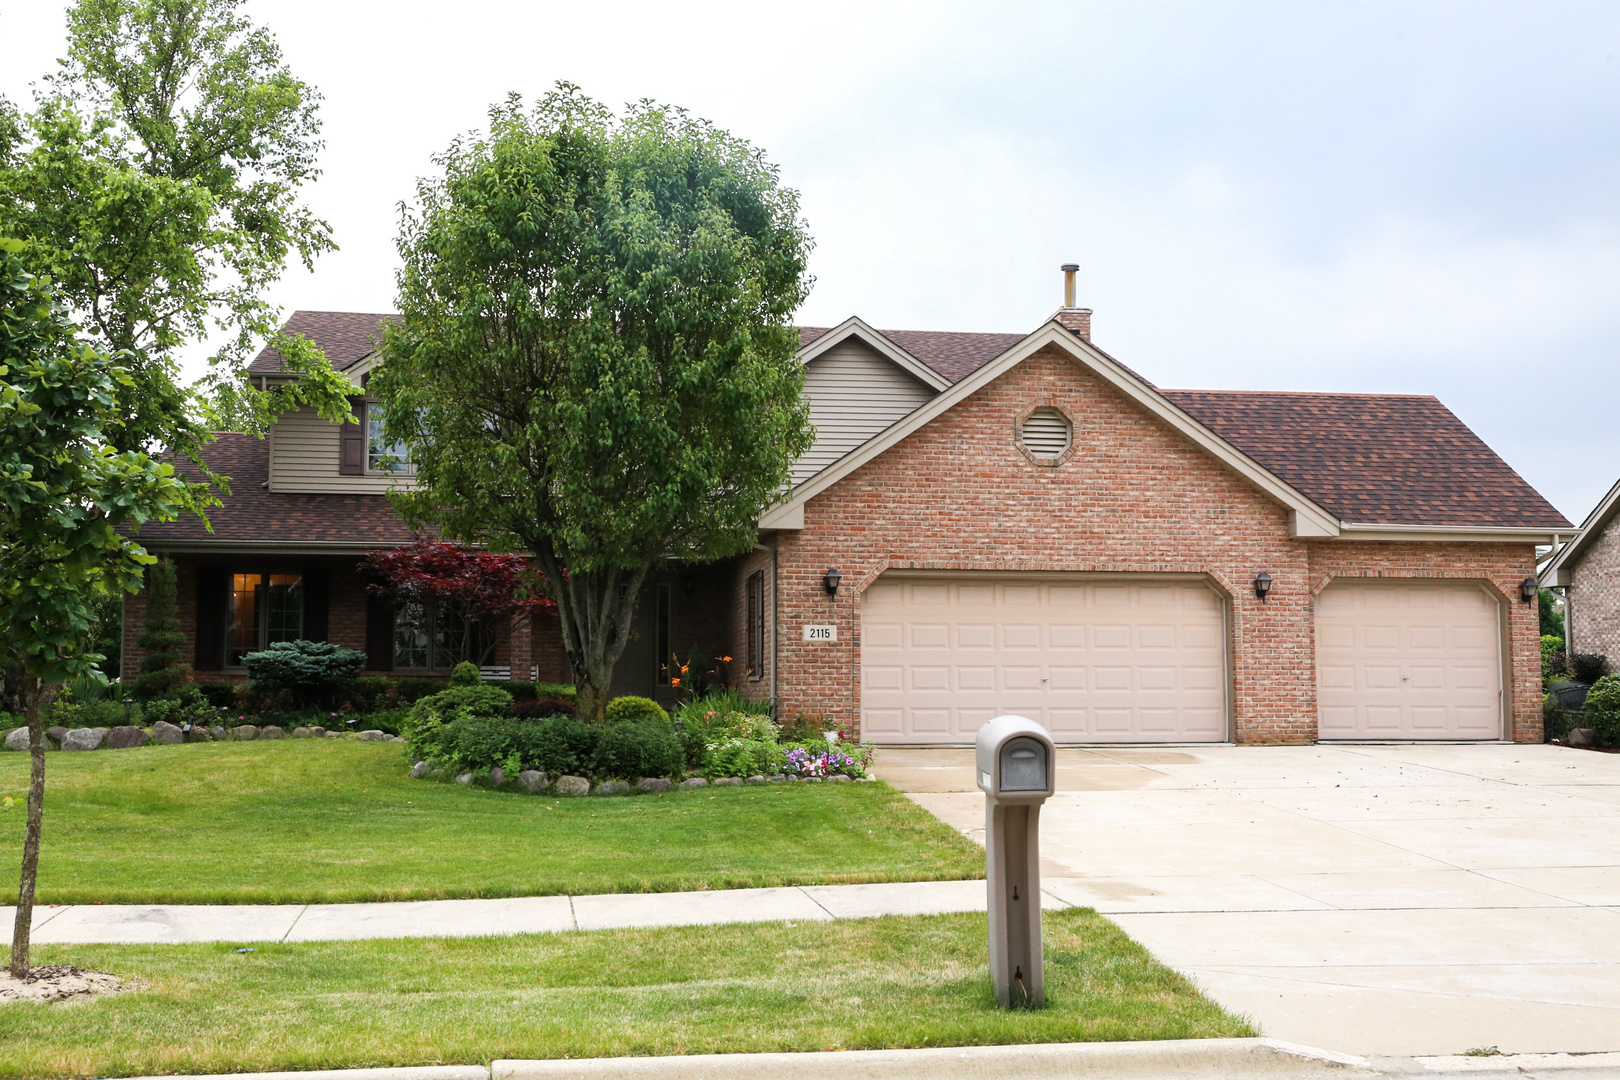 2115 Aston Drive, Woodridge, Illinois